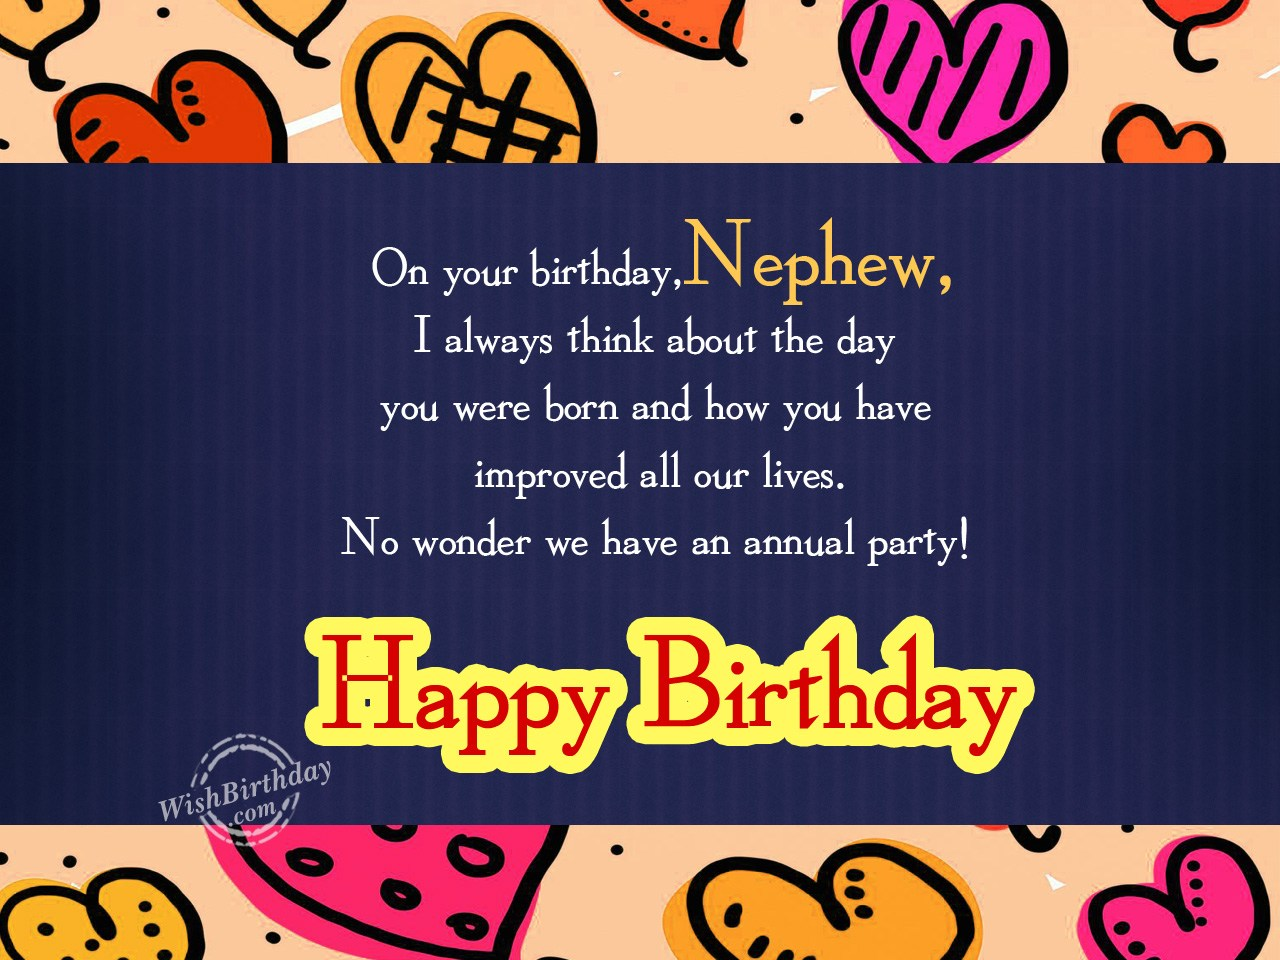 birthday greetings message to nephew ; On-your-birthday-I-always-think-about-the-day